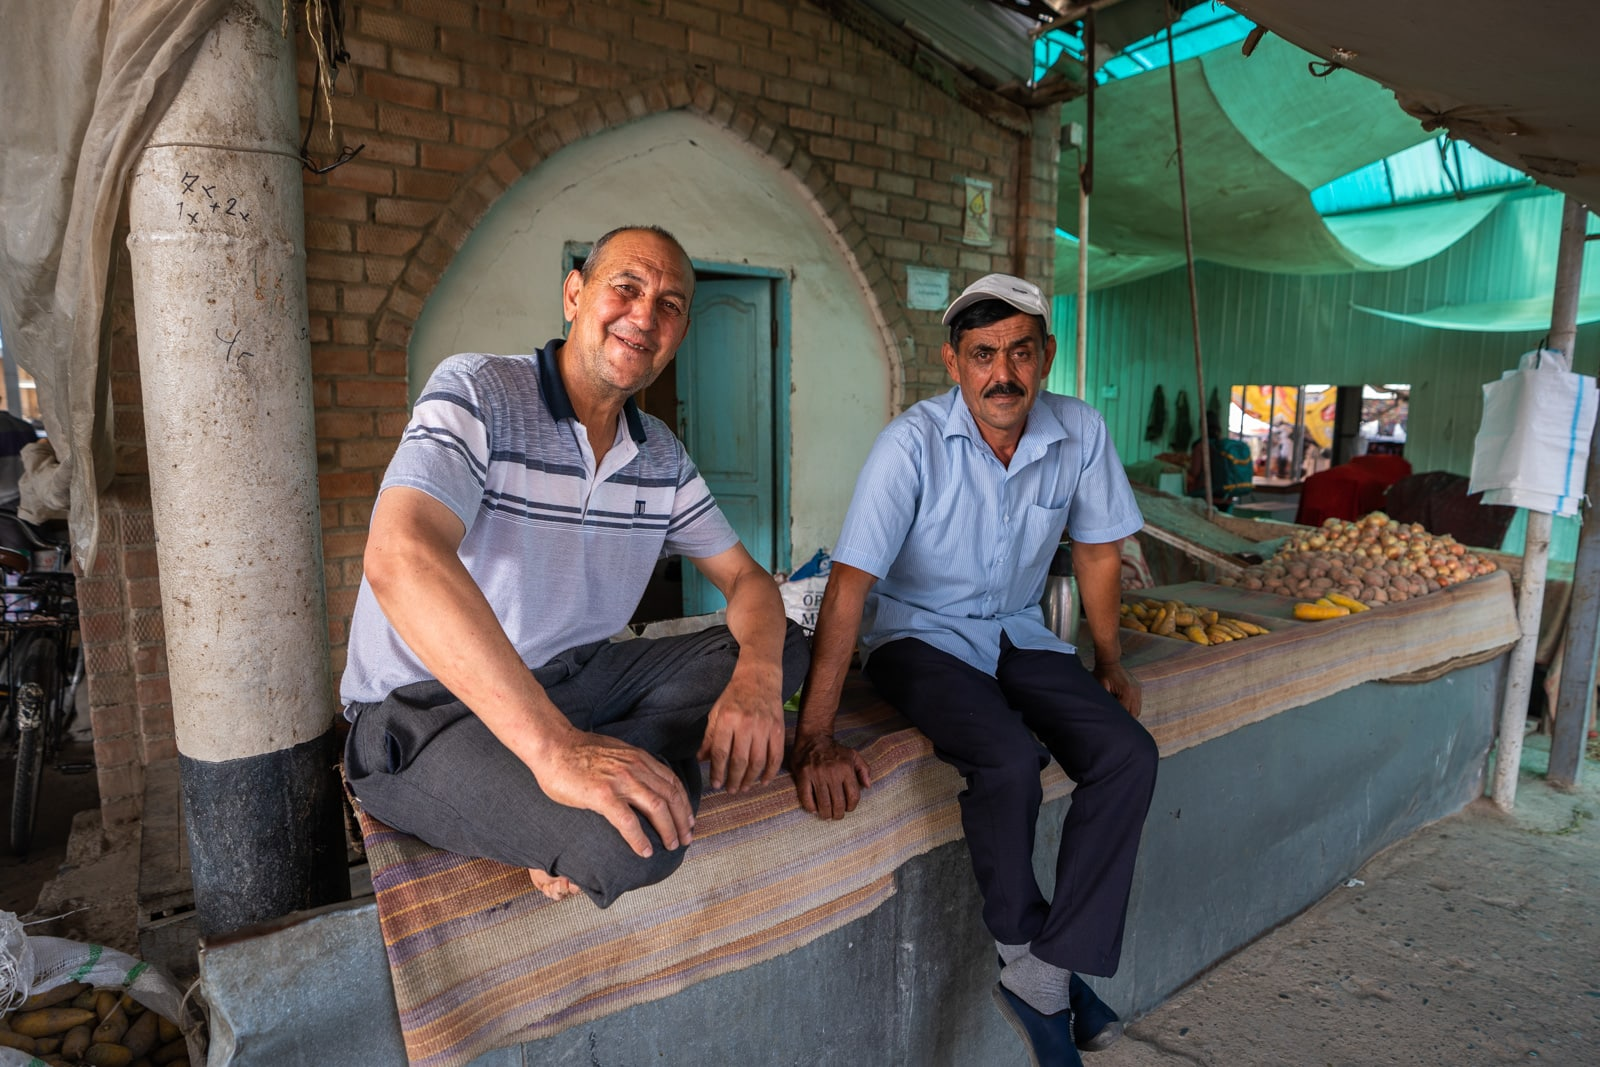 Friendly men in Panjakent, Tajikistan